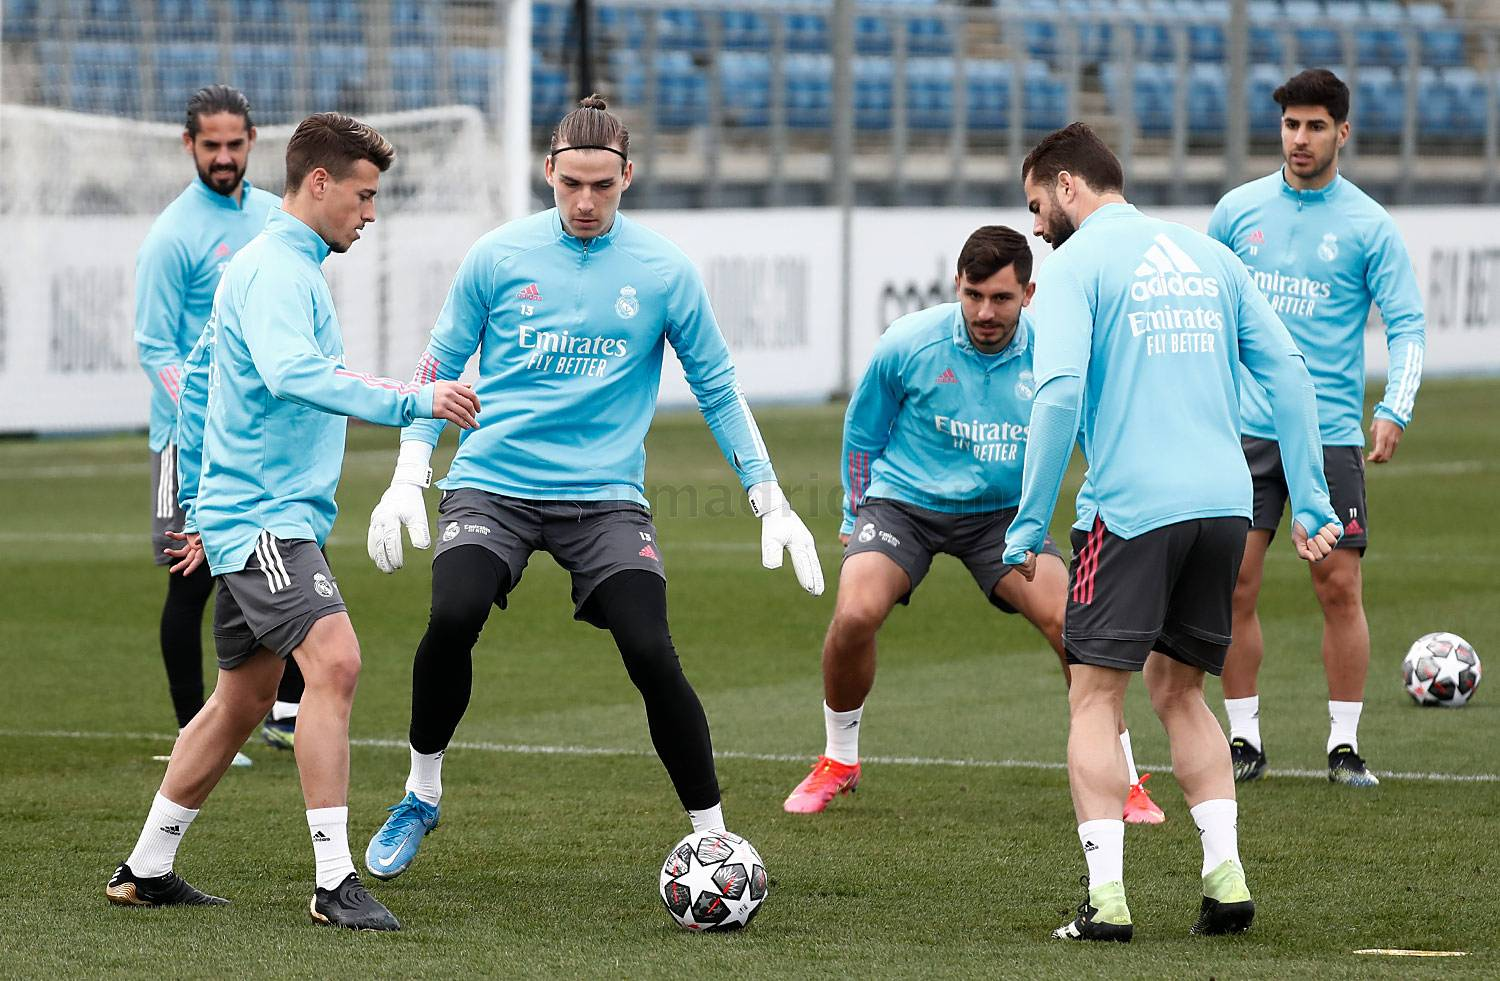 Real Madrid - Entrenamiento del Real Madrid  - 22-02-2021